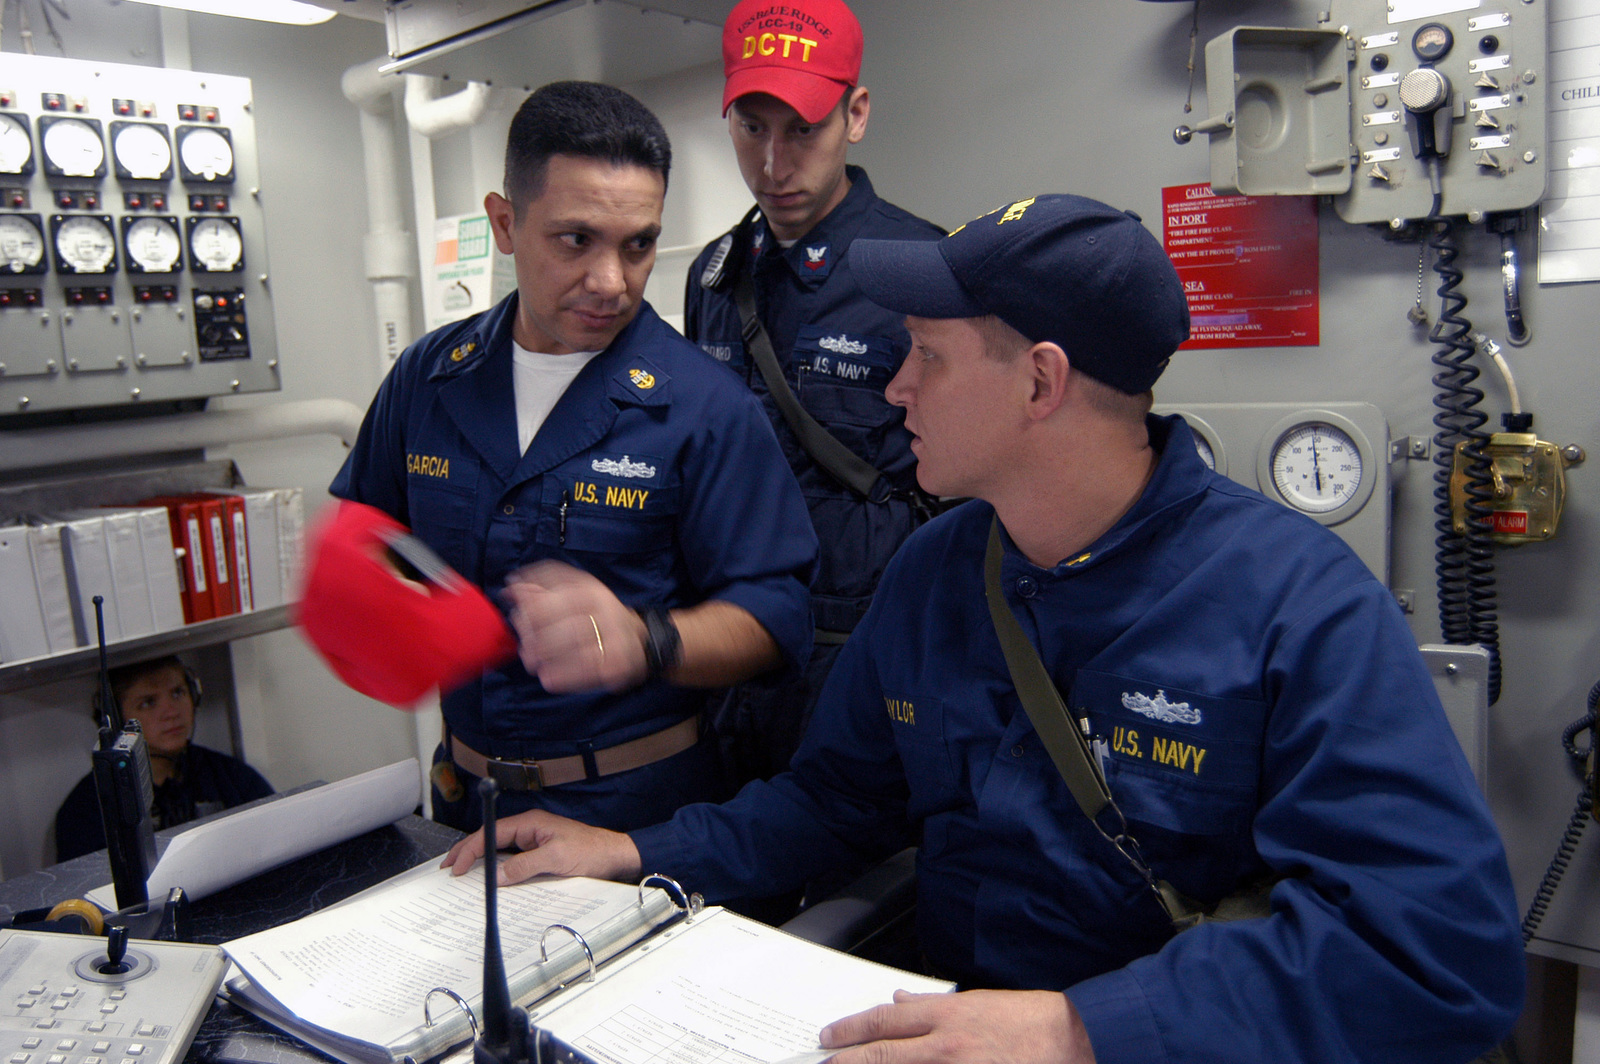 Onboard the US Navy (USN) Amphibious Command Ship, USS BLUE